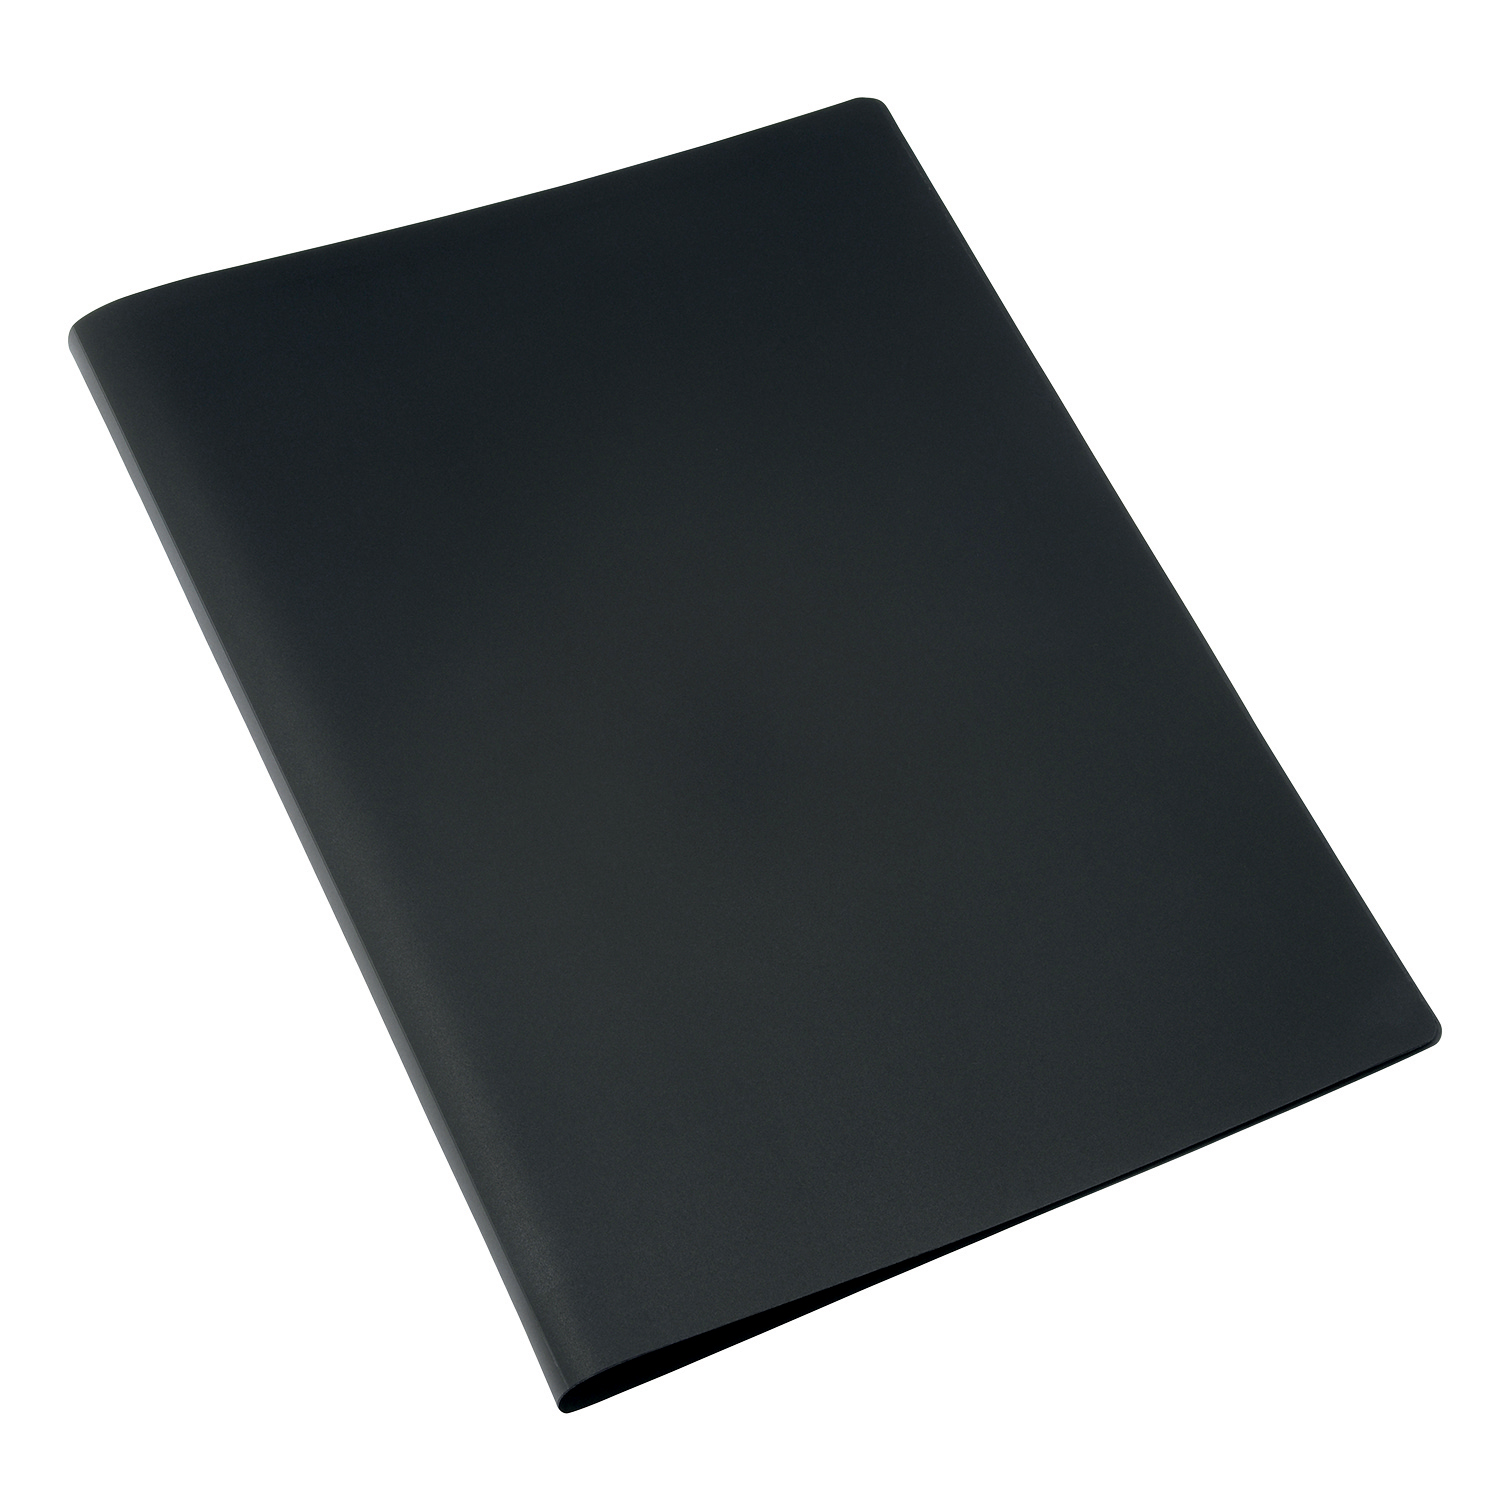 Display Books 5 Star Office Display Book Soft Cover Lightweight Polypropylene 10 Pockets A4 Black